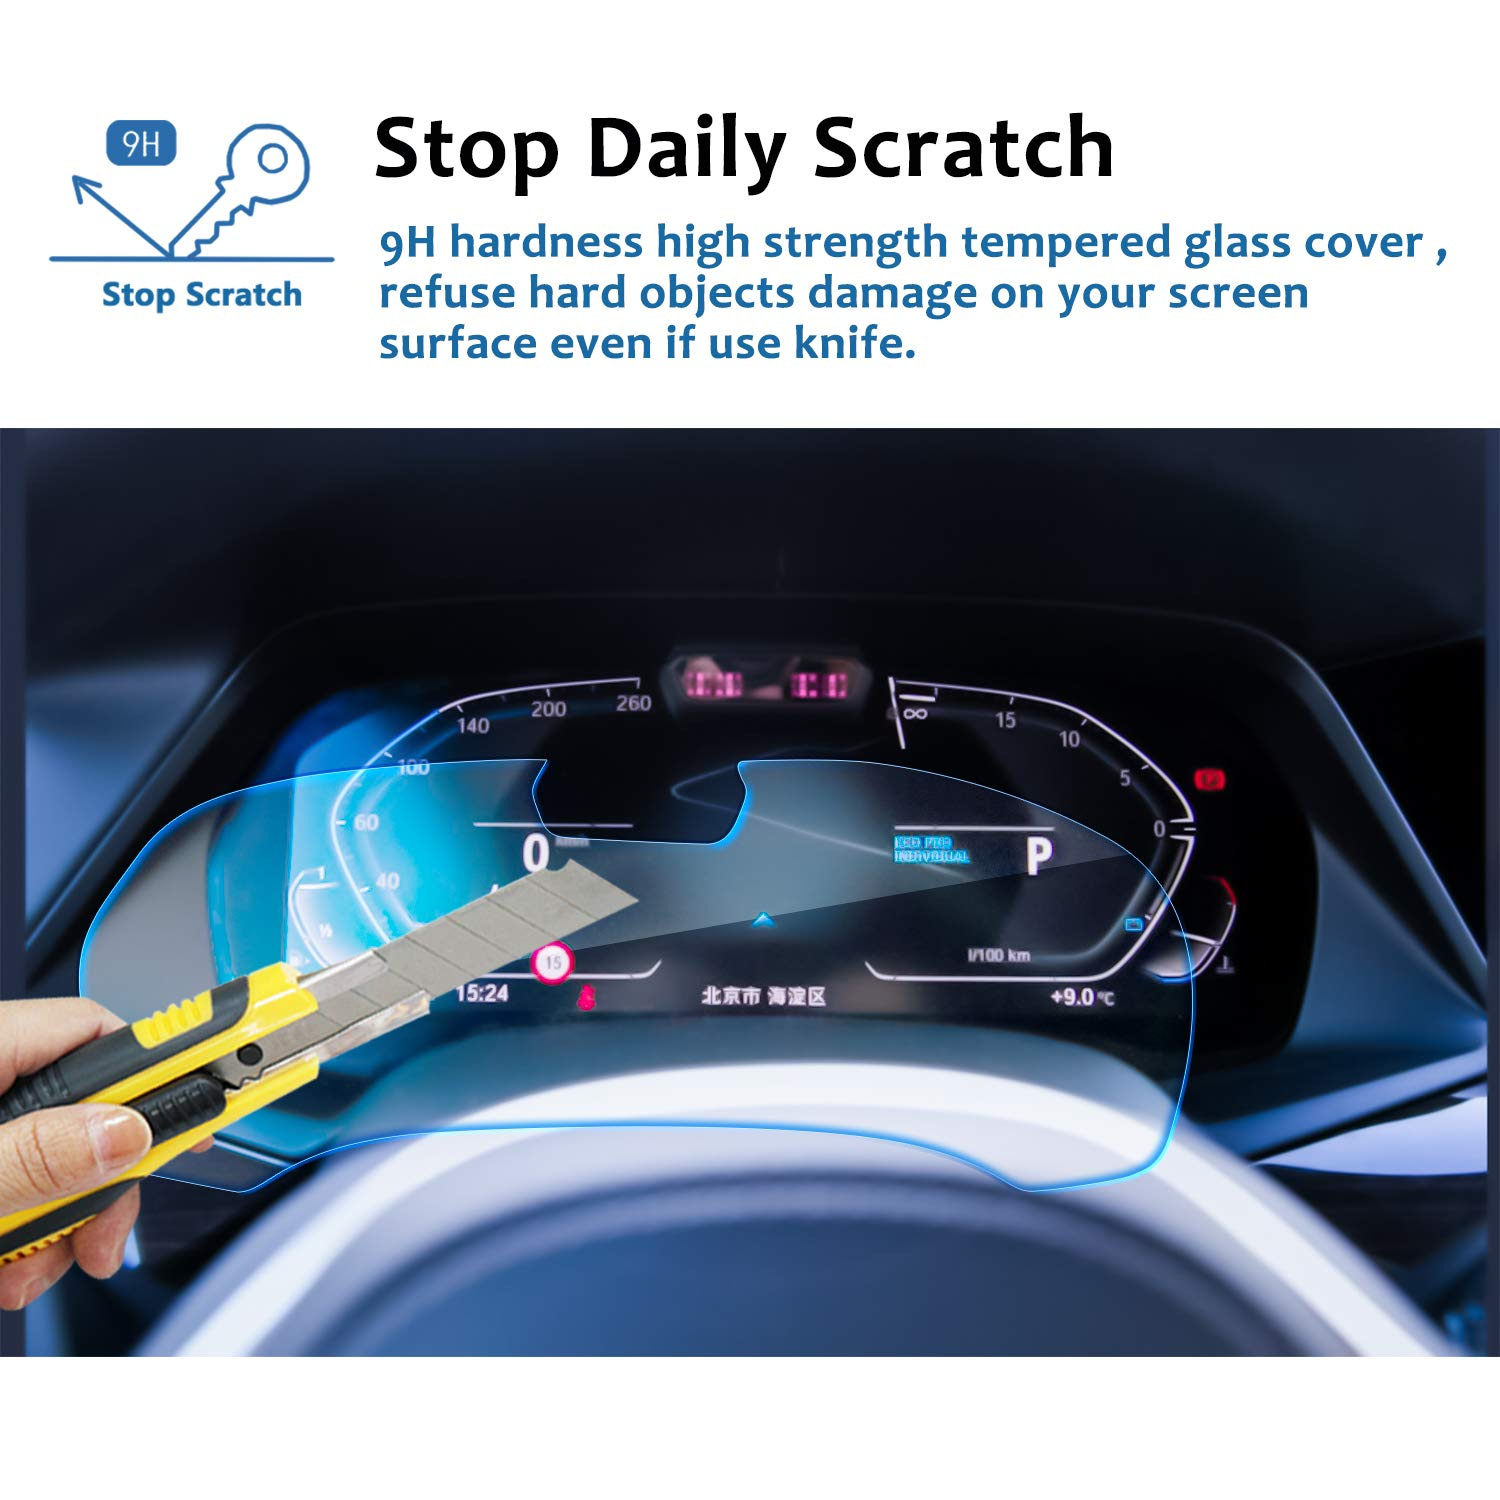 LFOTPP Instrument Panel Tempered Glass Screen Protector for 2019 X5 G05,Dash Panel Screen,Anti Scratch High Clarity LiFan